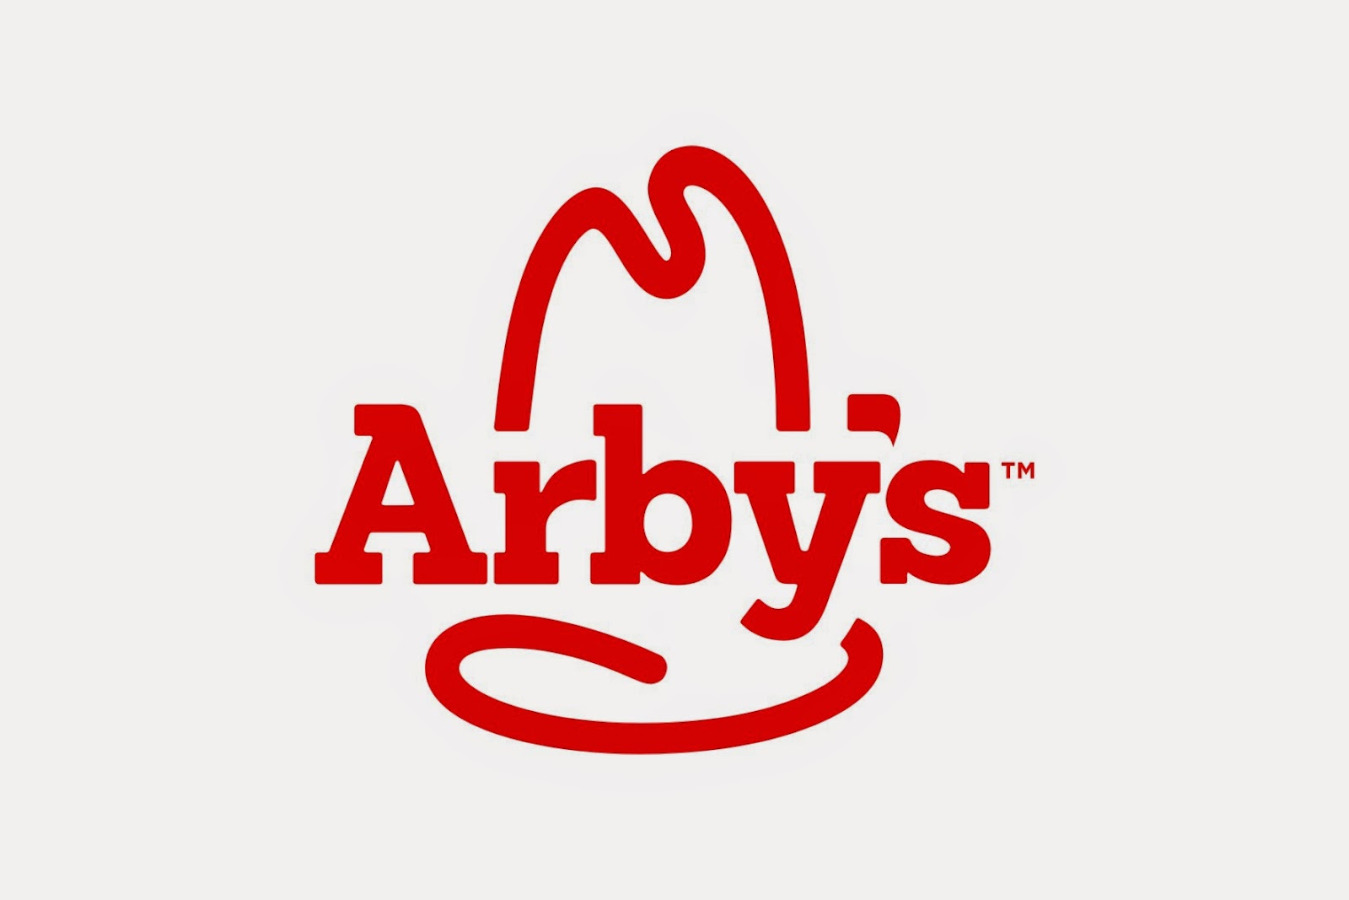 ARBYS $20 INSTANT DELIVERY